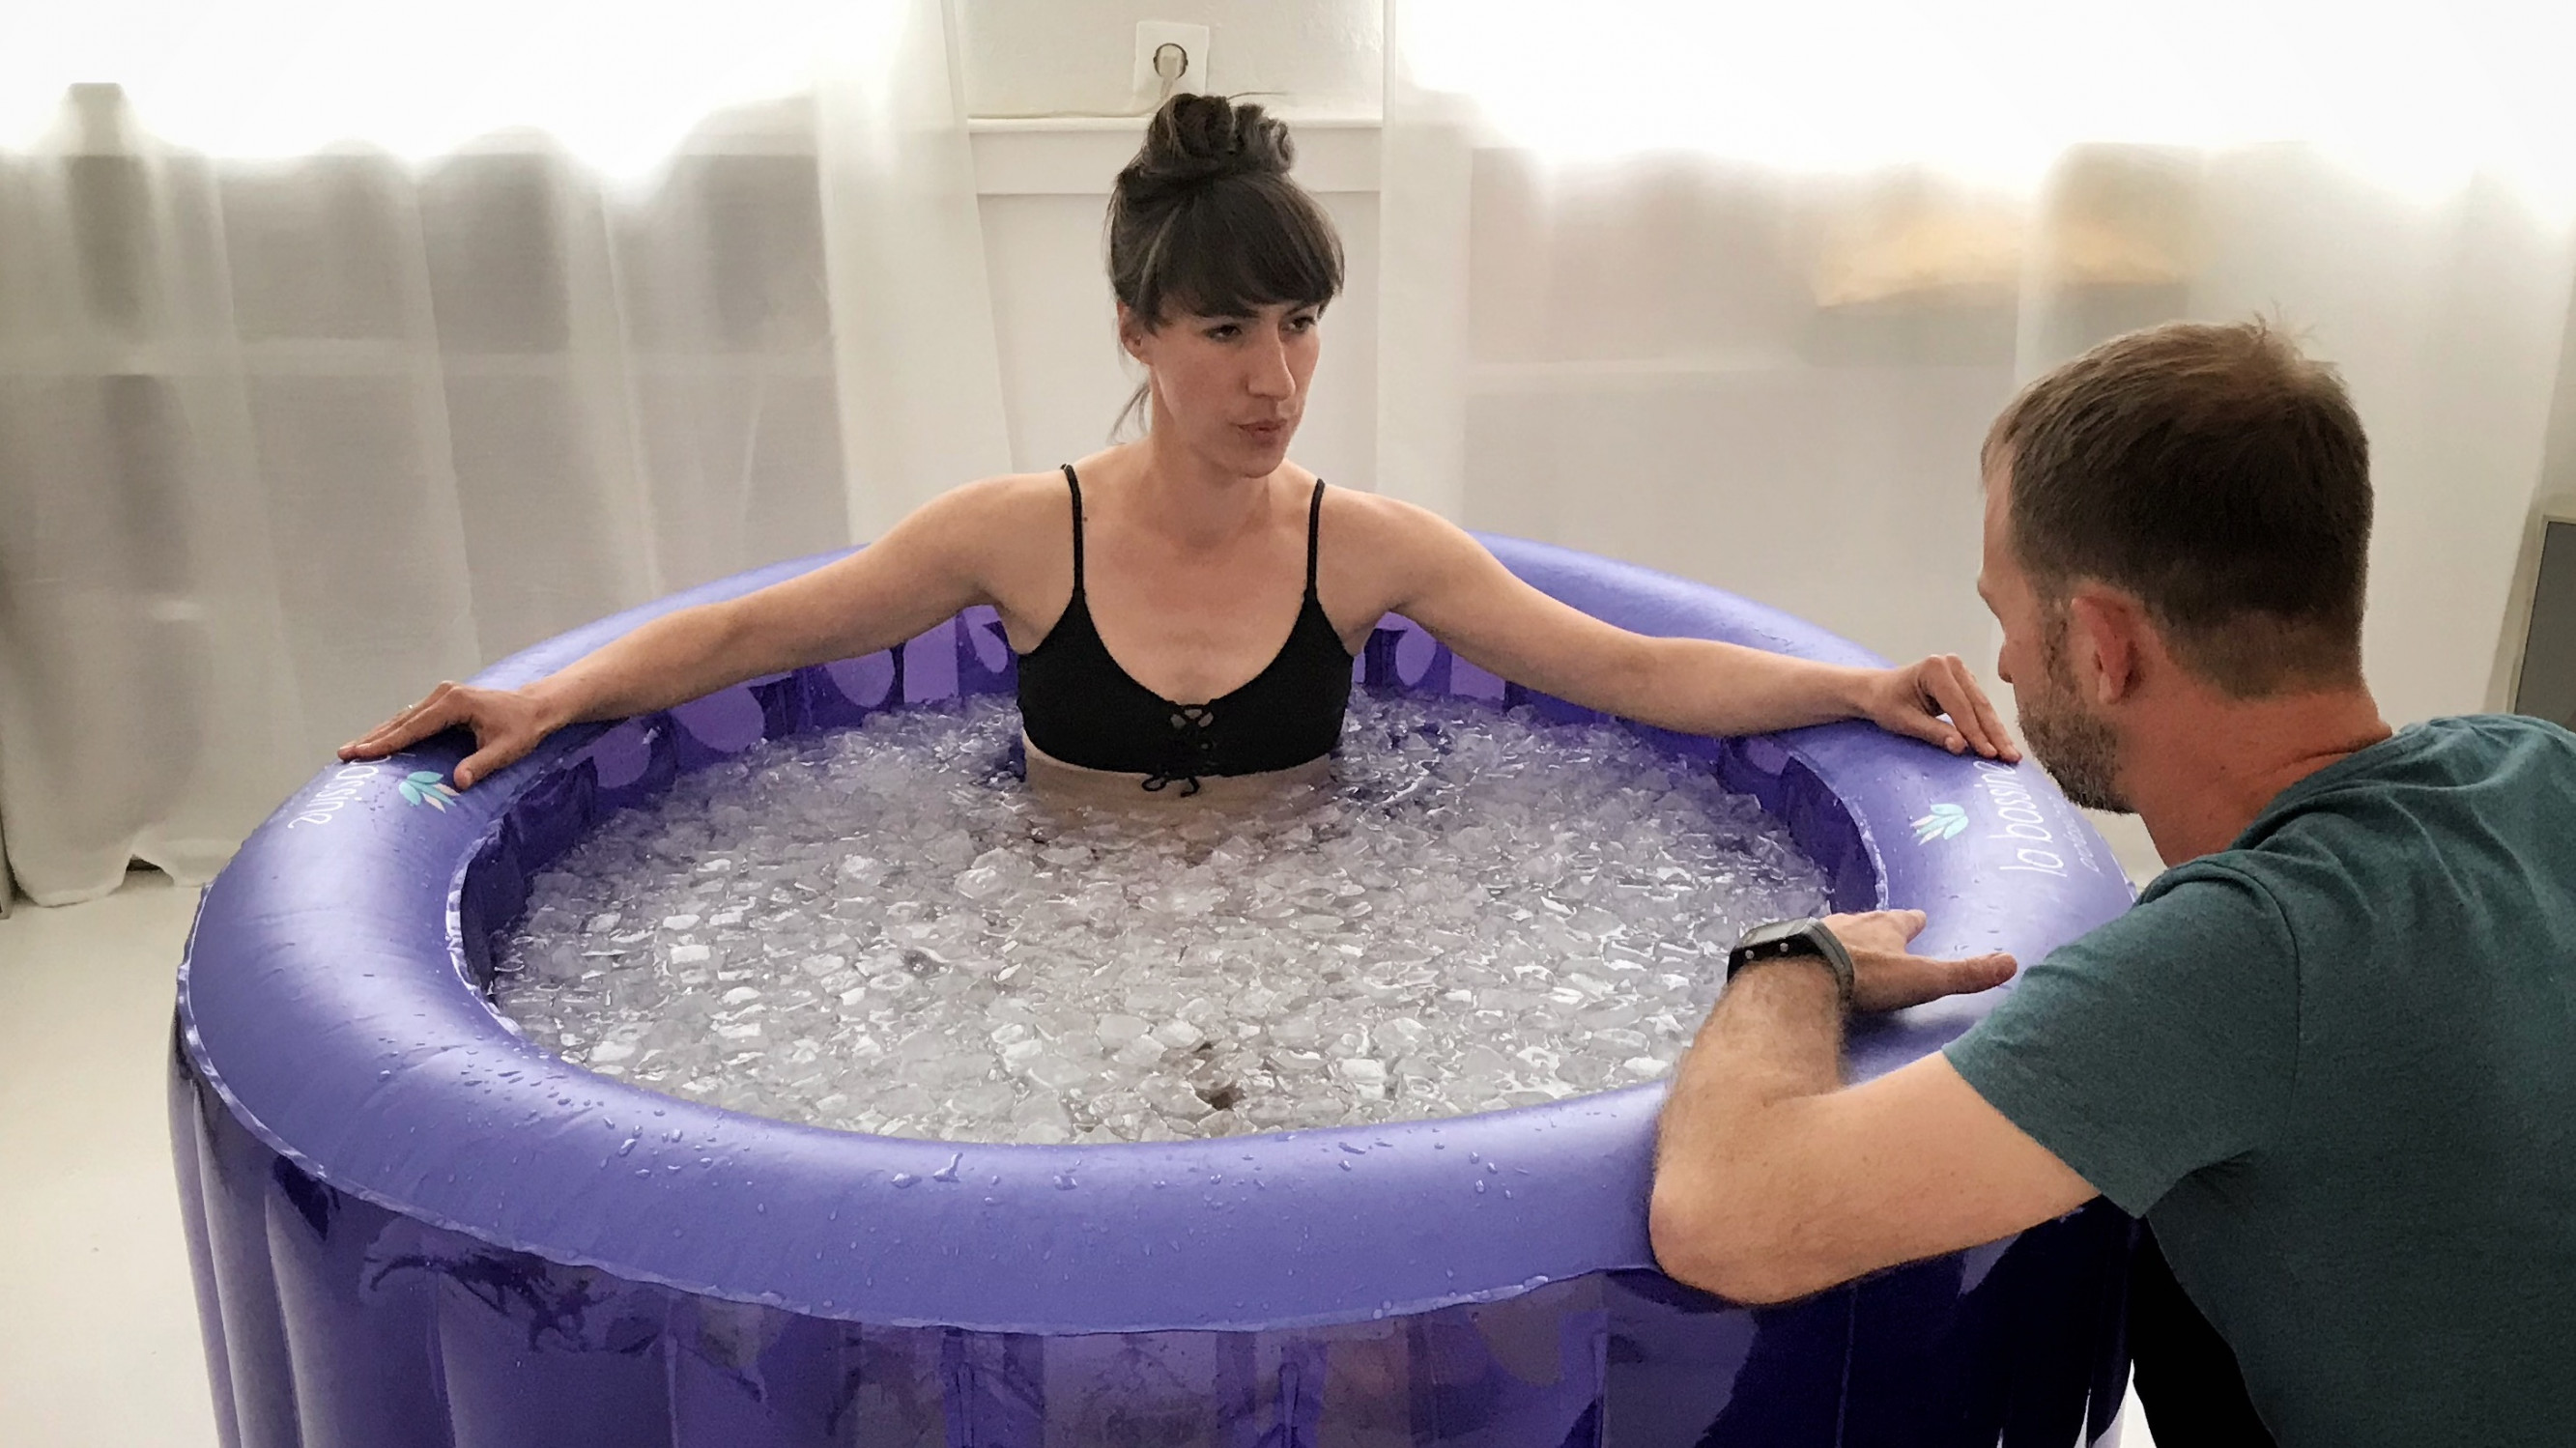 Image 6 of 8 - Experience Ice Bath to get an impression of WHM 5 Week Group Course - part II at Berlin